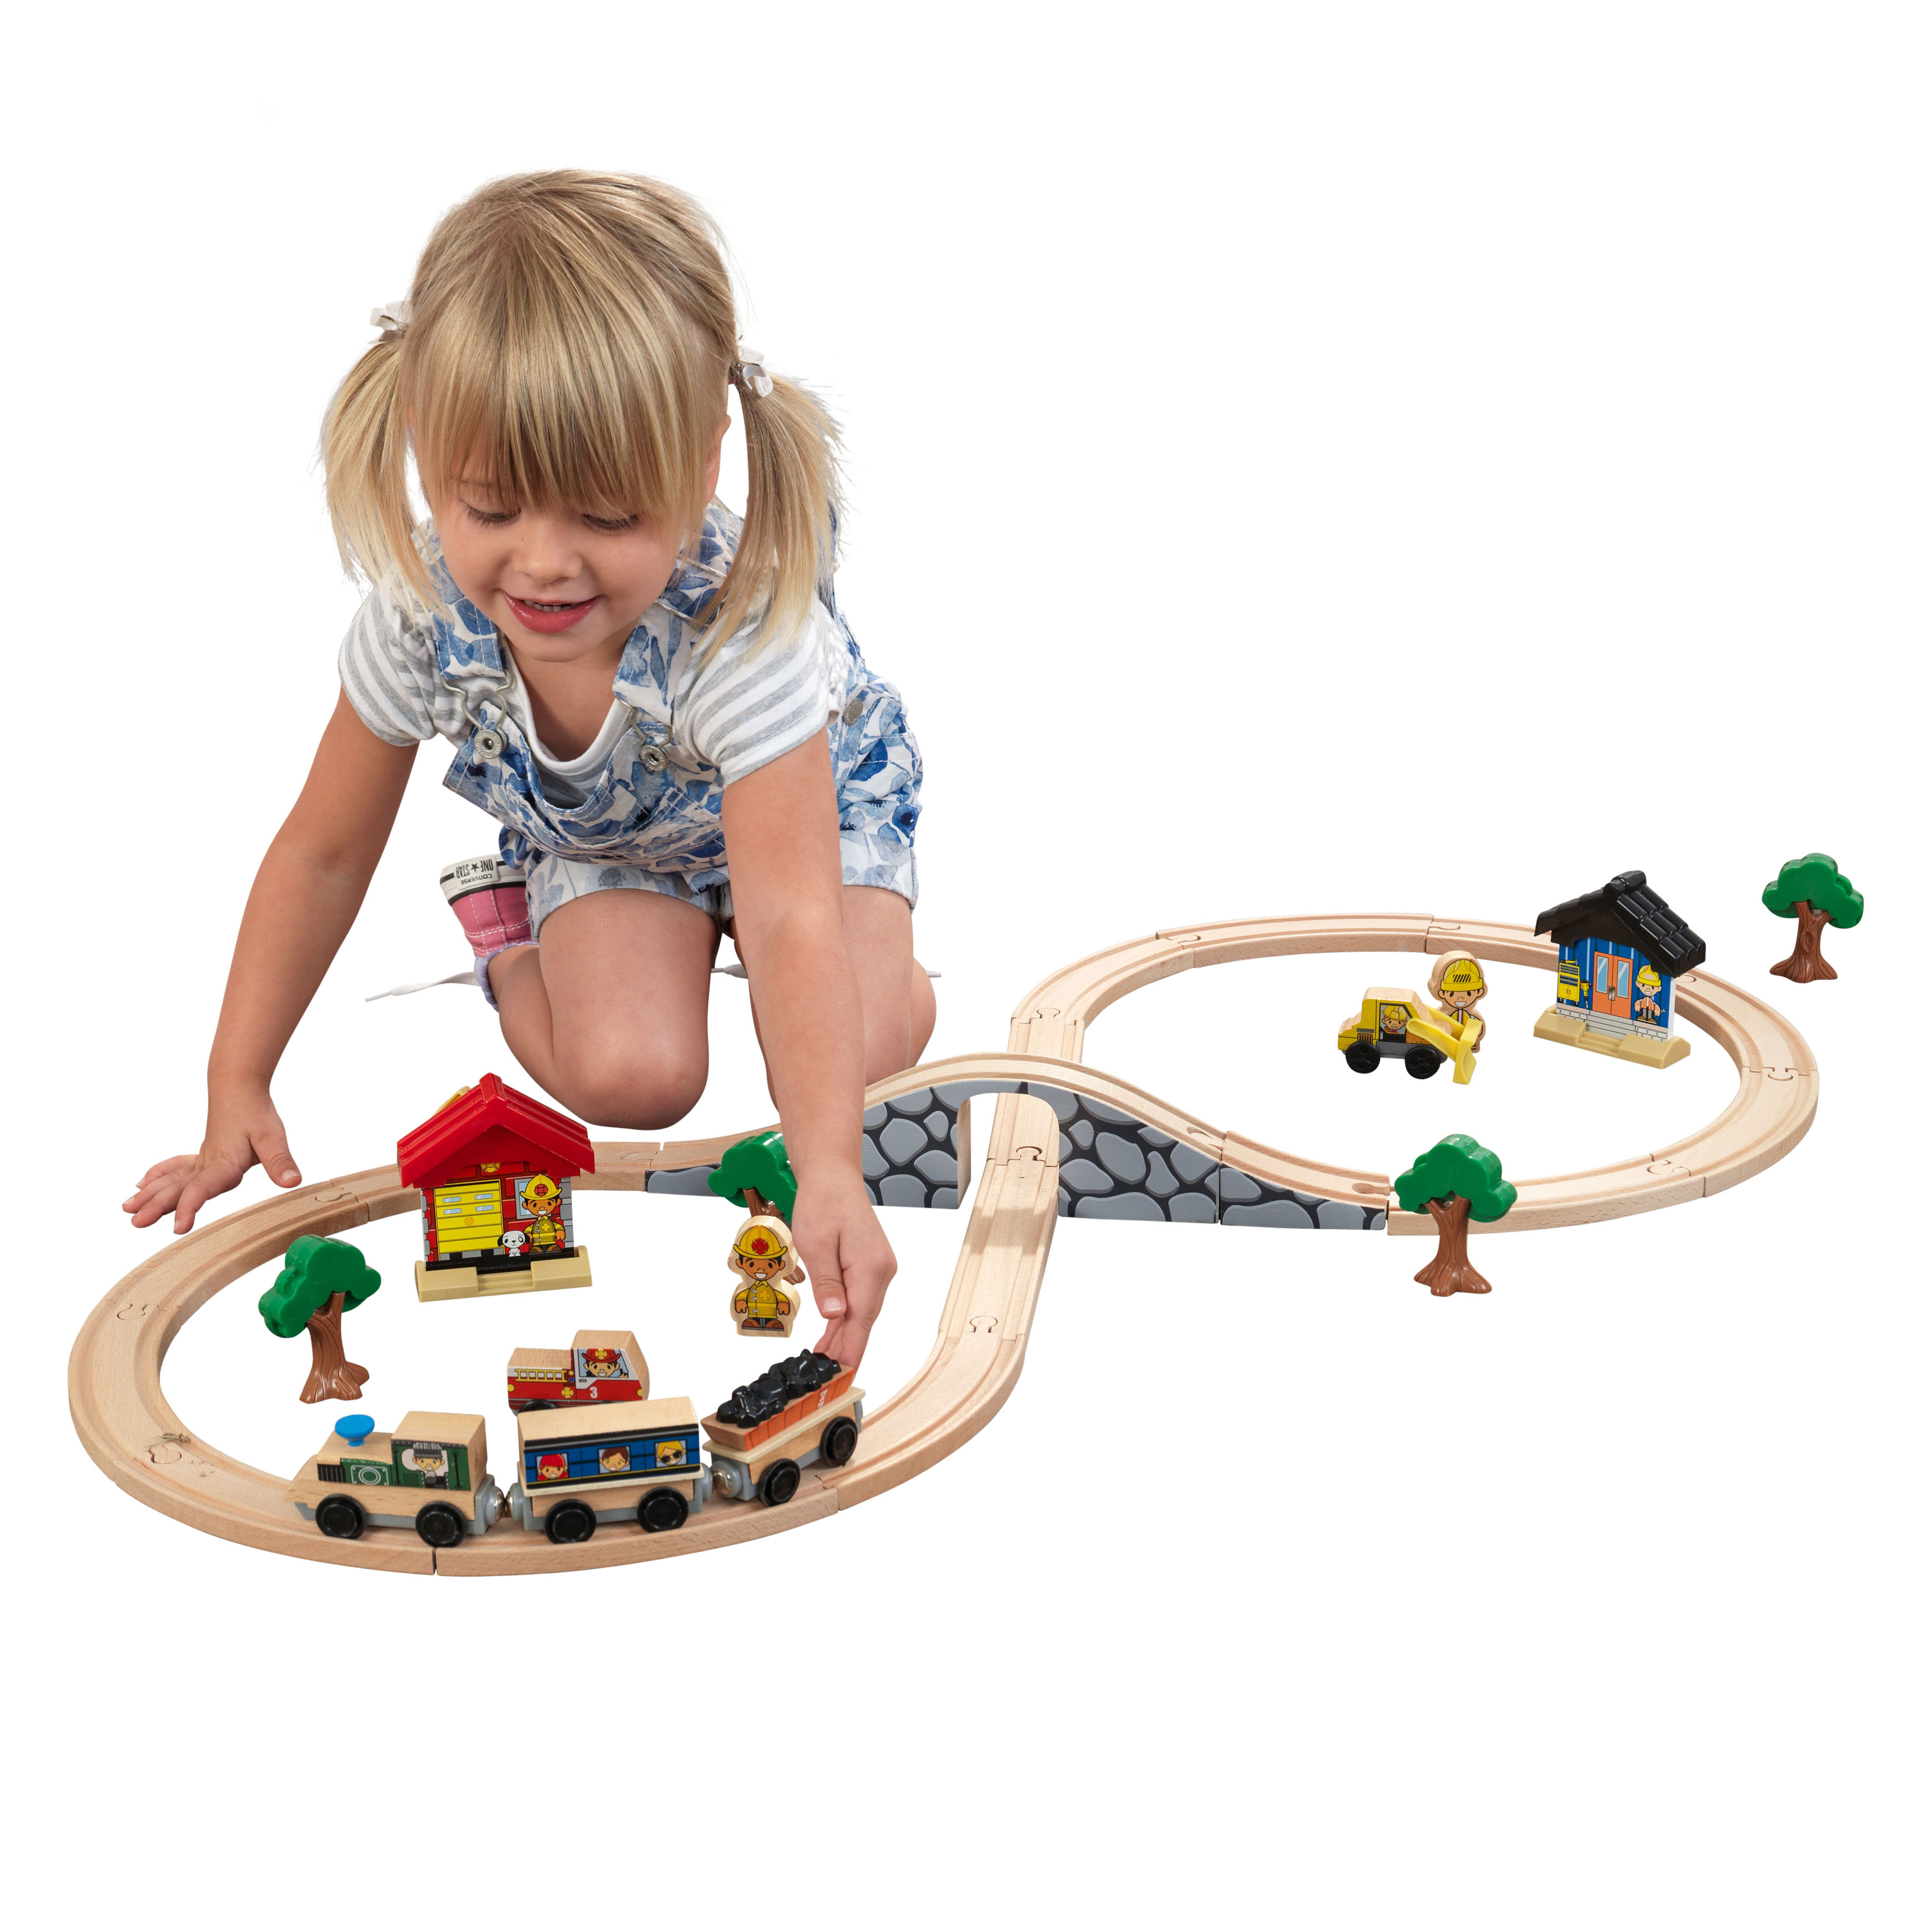 KidKraft Figure 8 Train Set with 38 accessories included by KidKraft